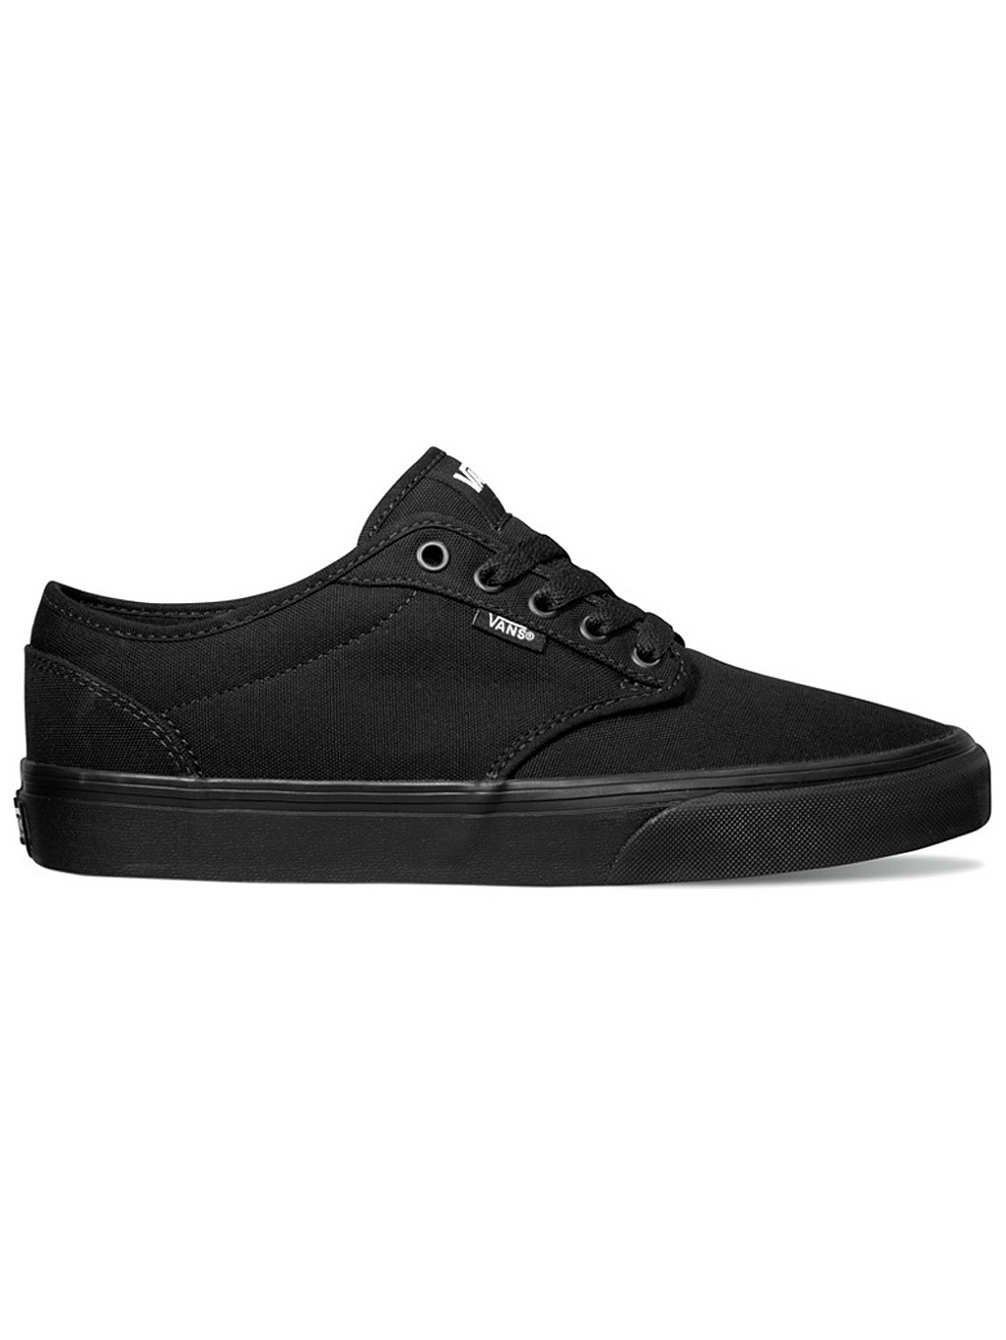 Vans Men's VANS ATWOOD (CANVAS) SKATE SHOES 10 Men US (BLACK/BLACK) by Vans